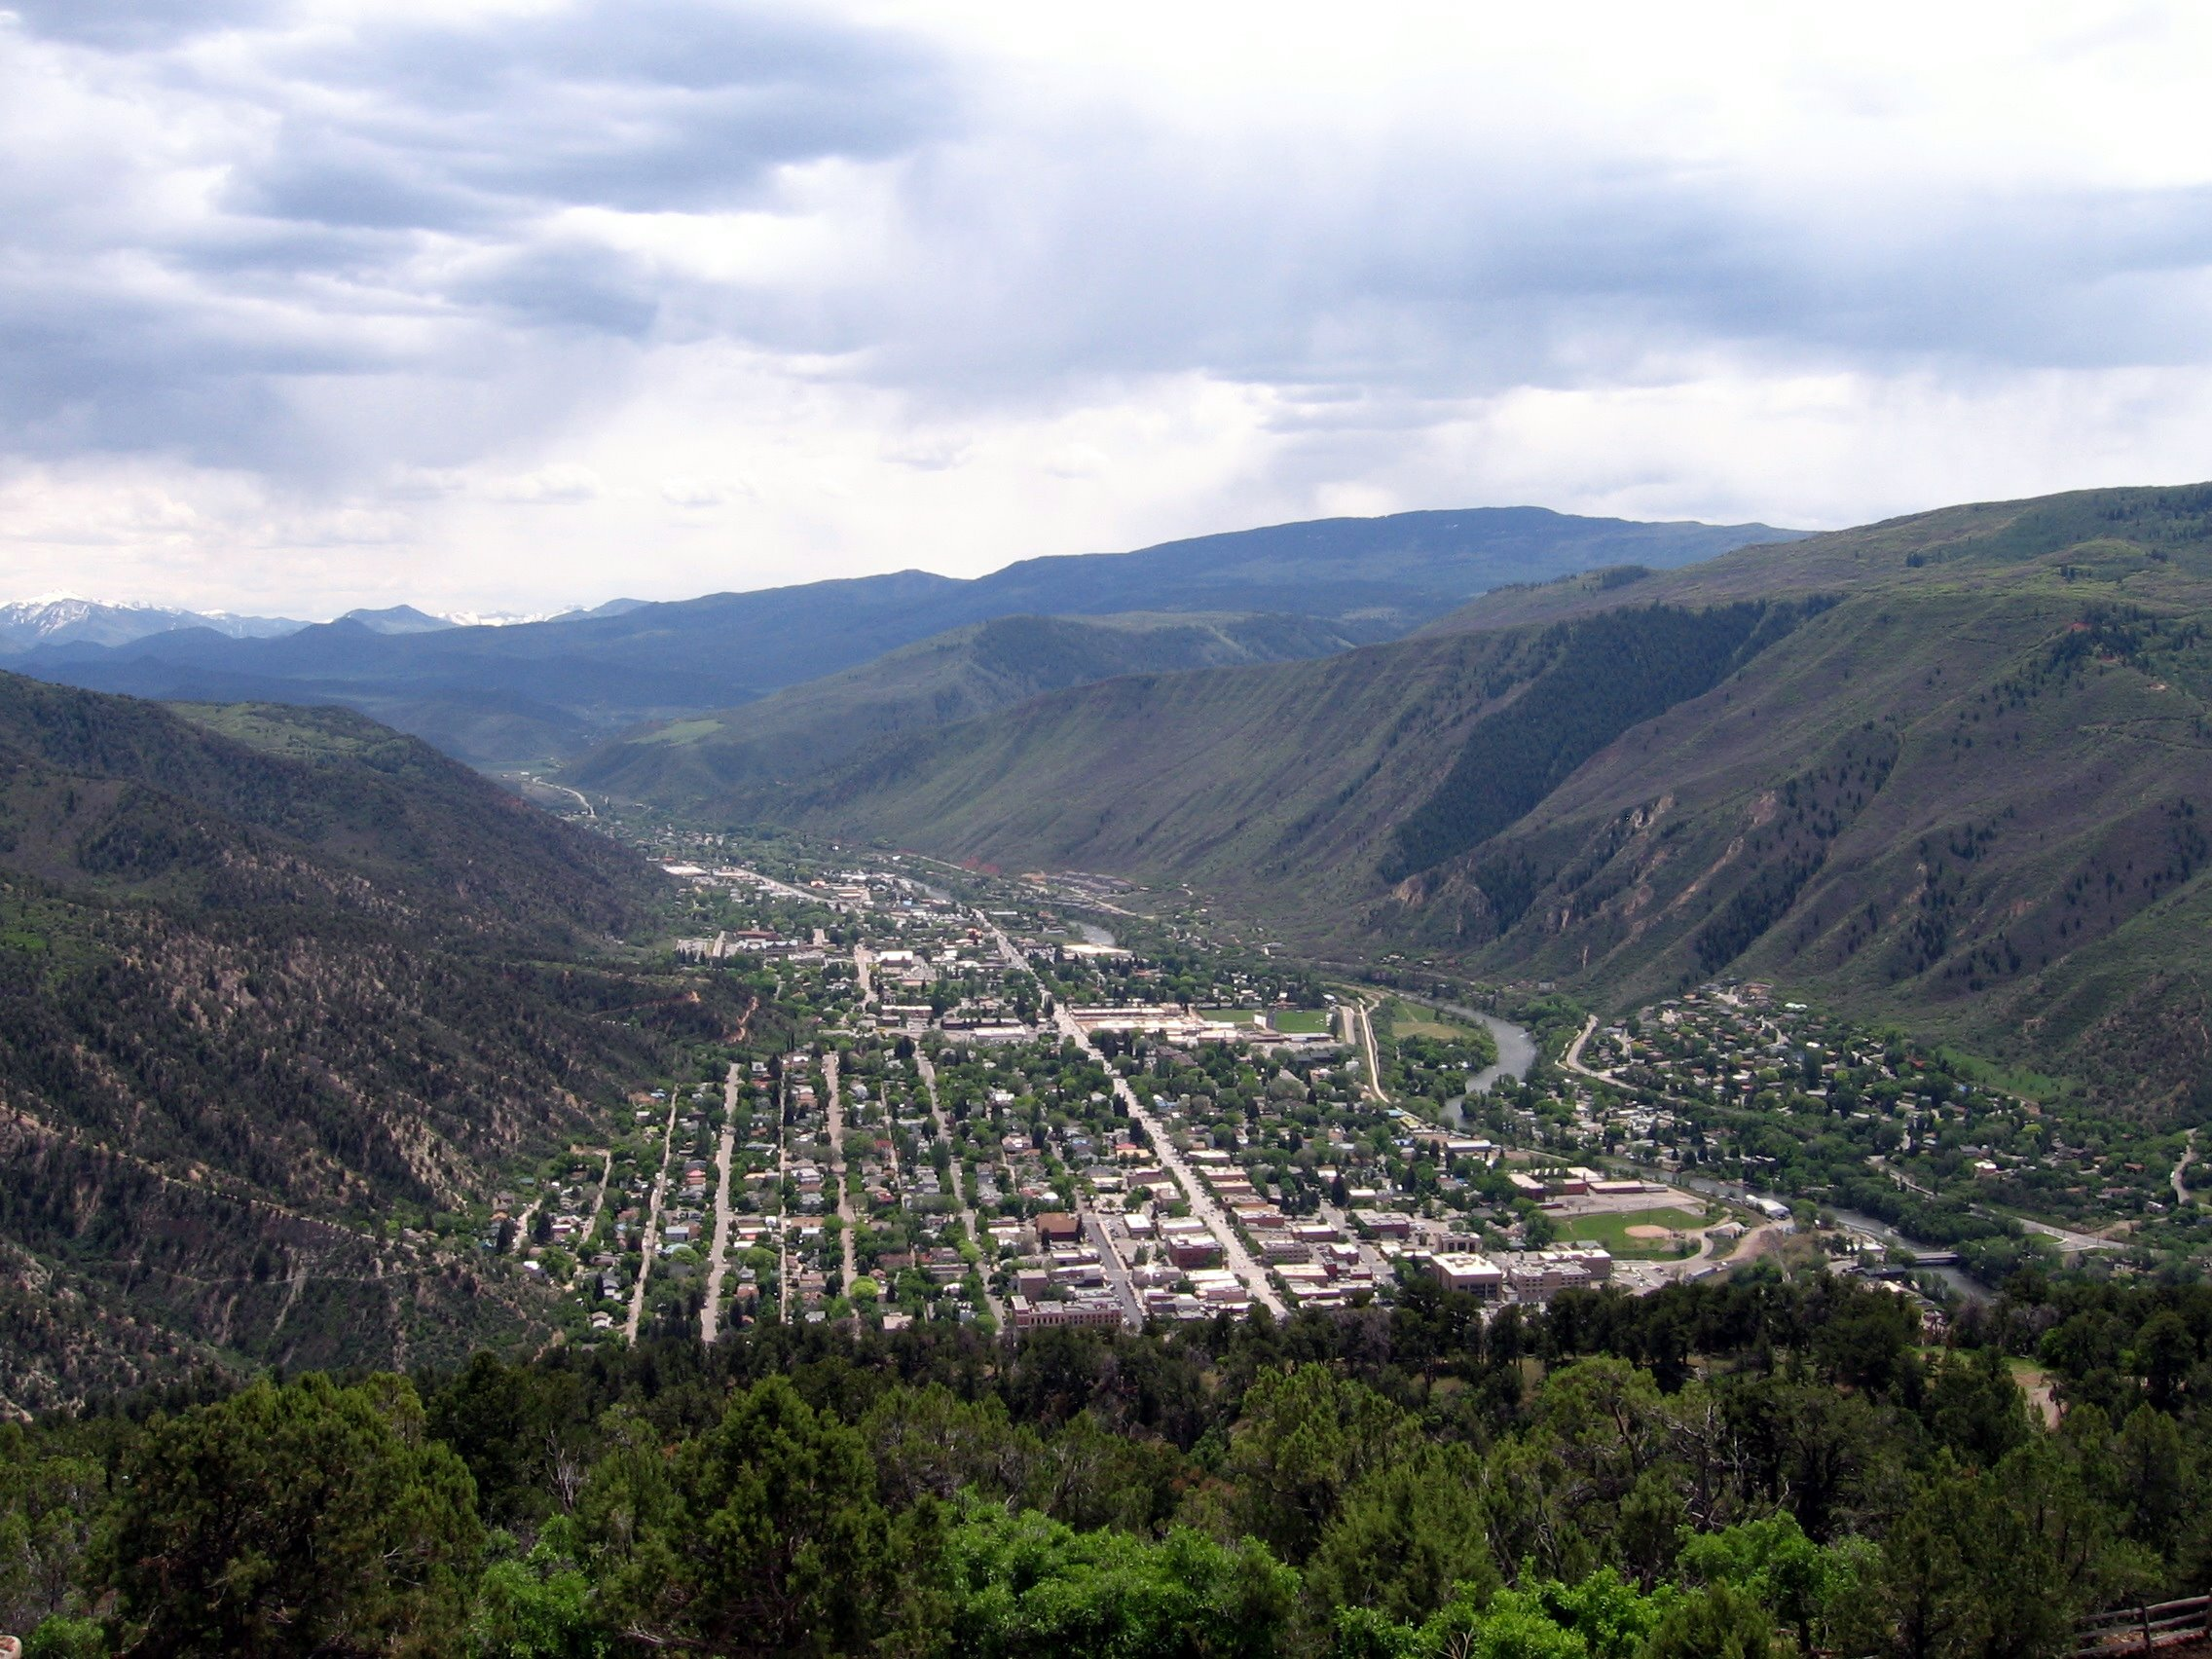 Glenwood_springs_co.jpg